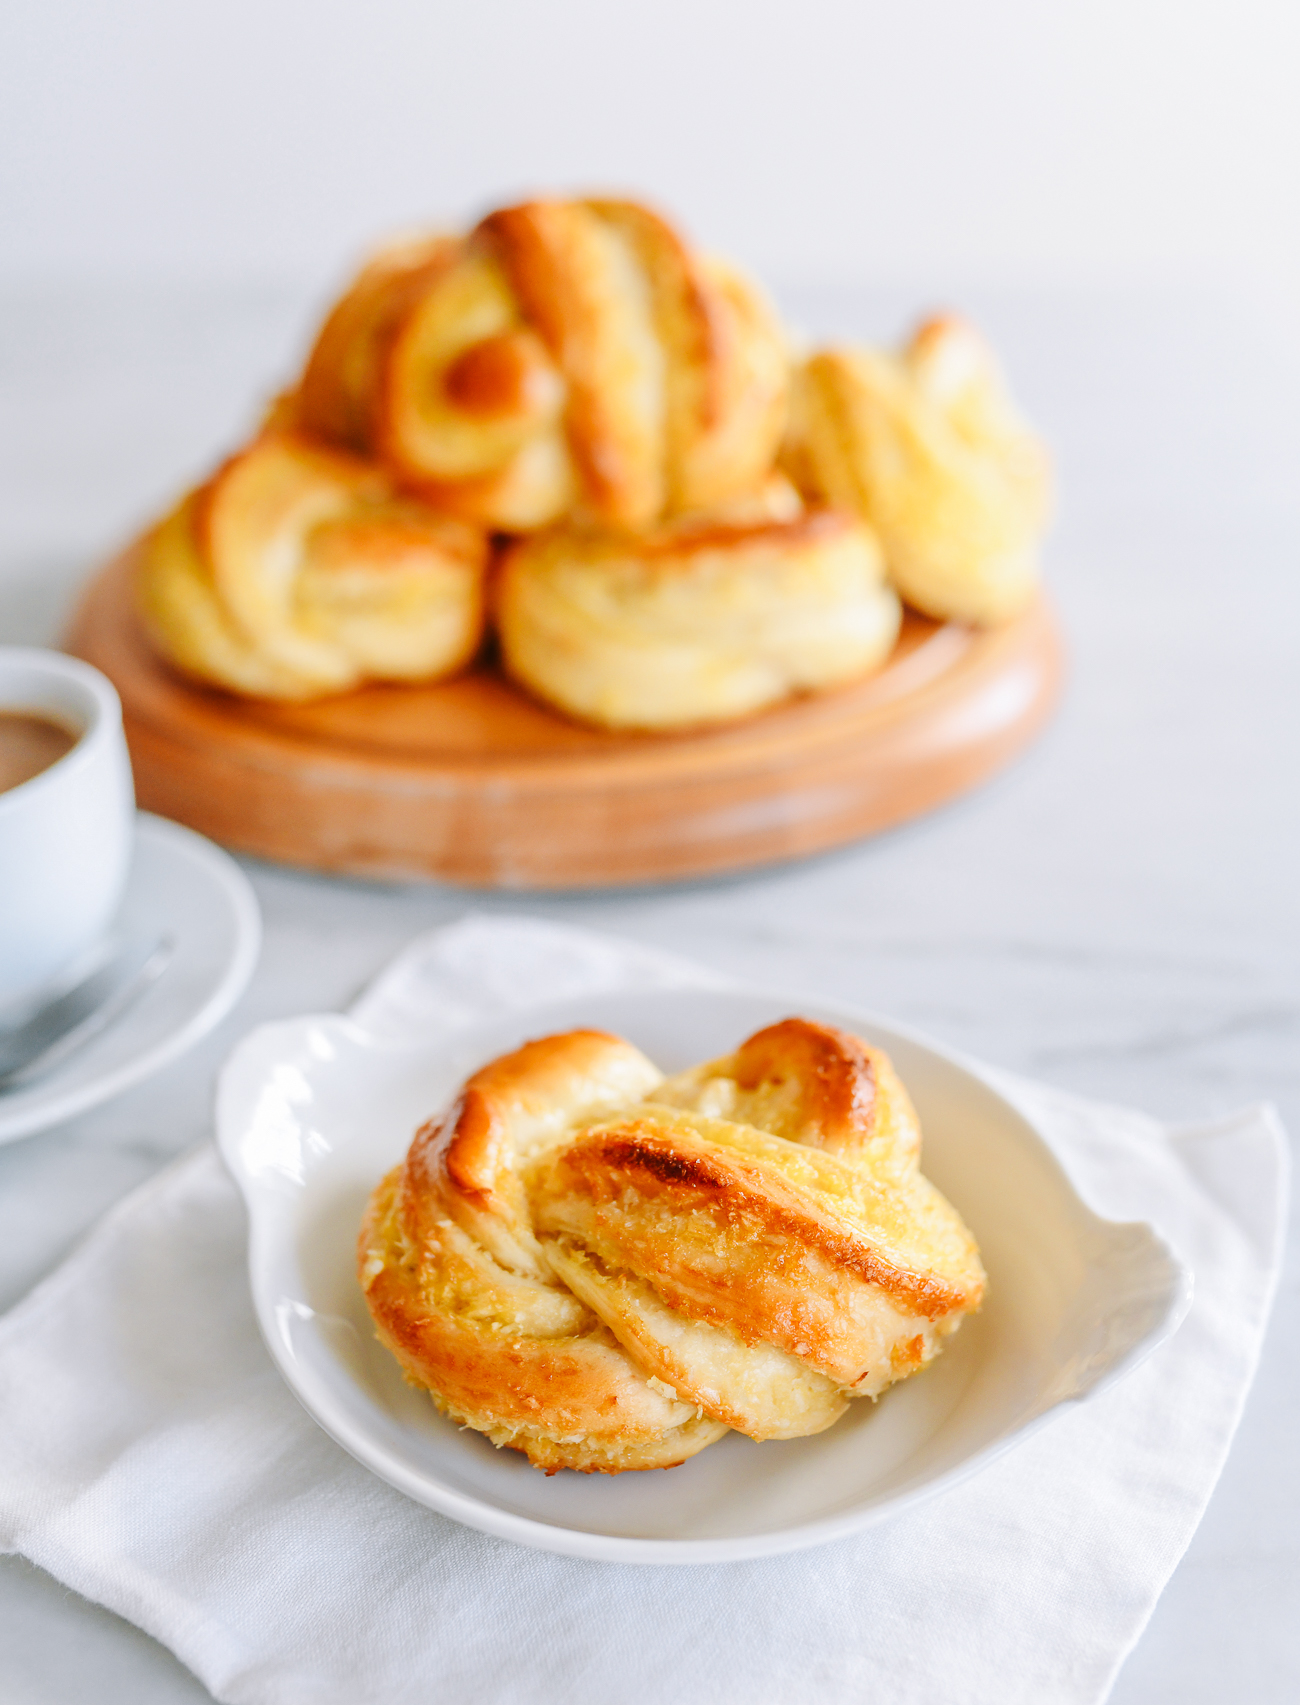 Baked Inside Out Hong Kong Coconut Buns